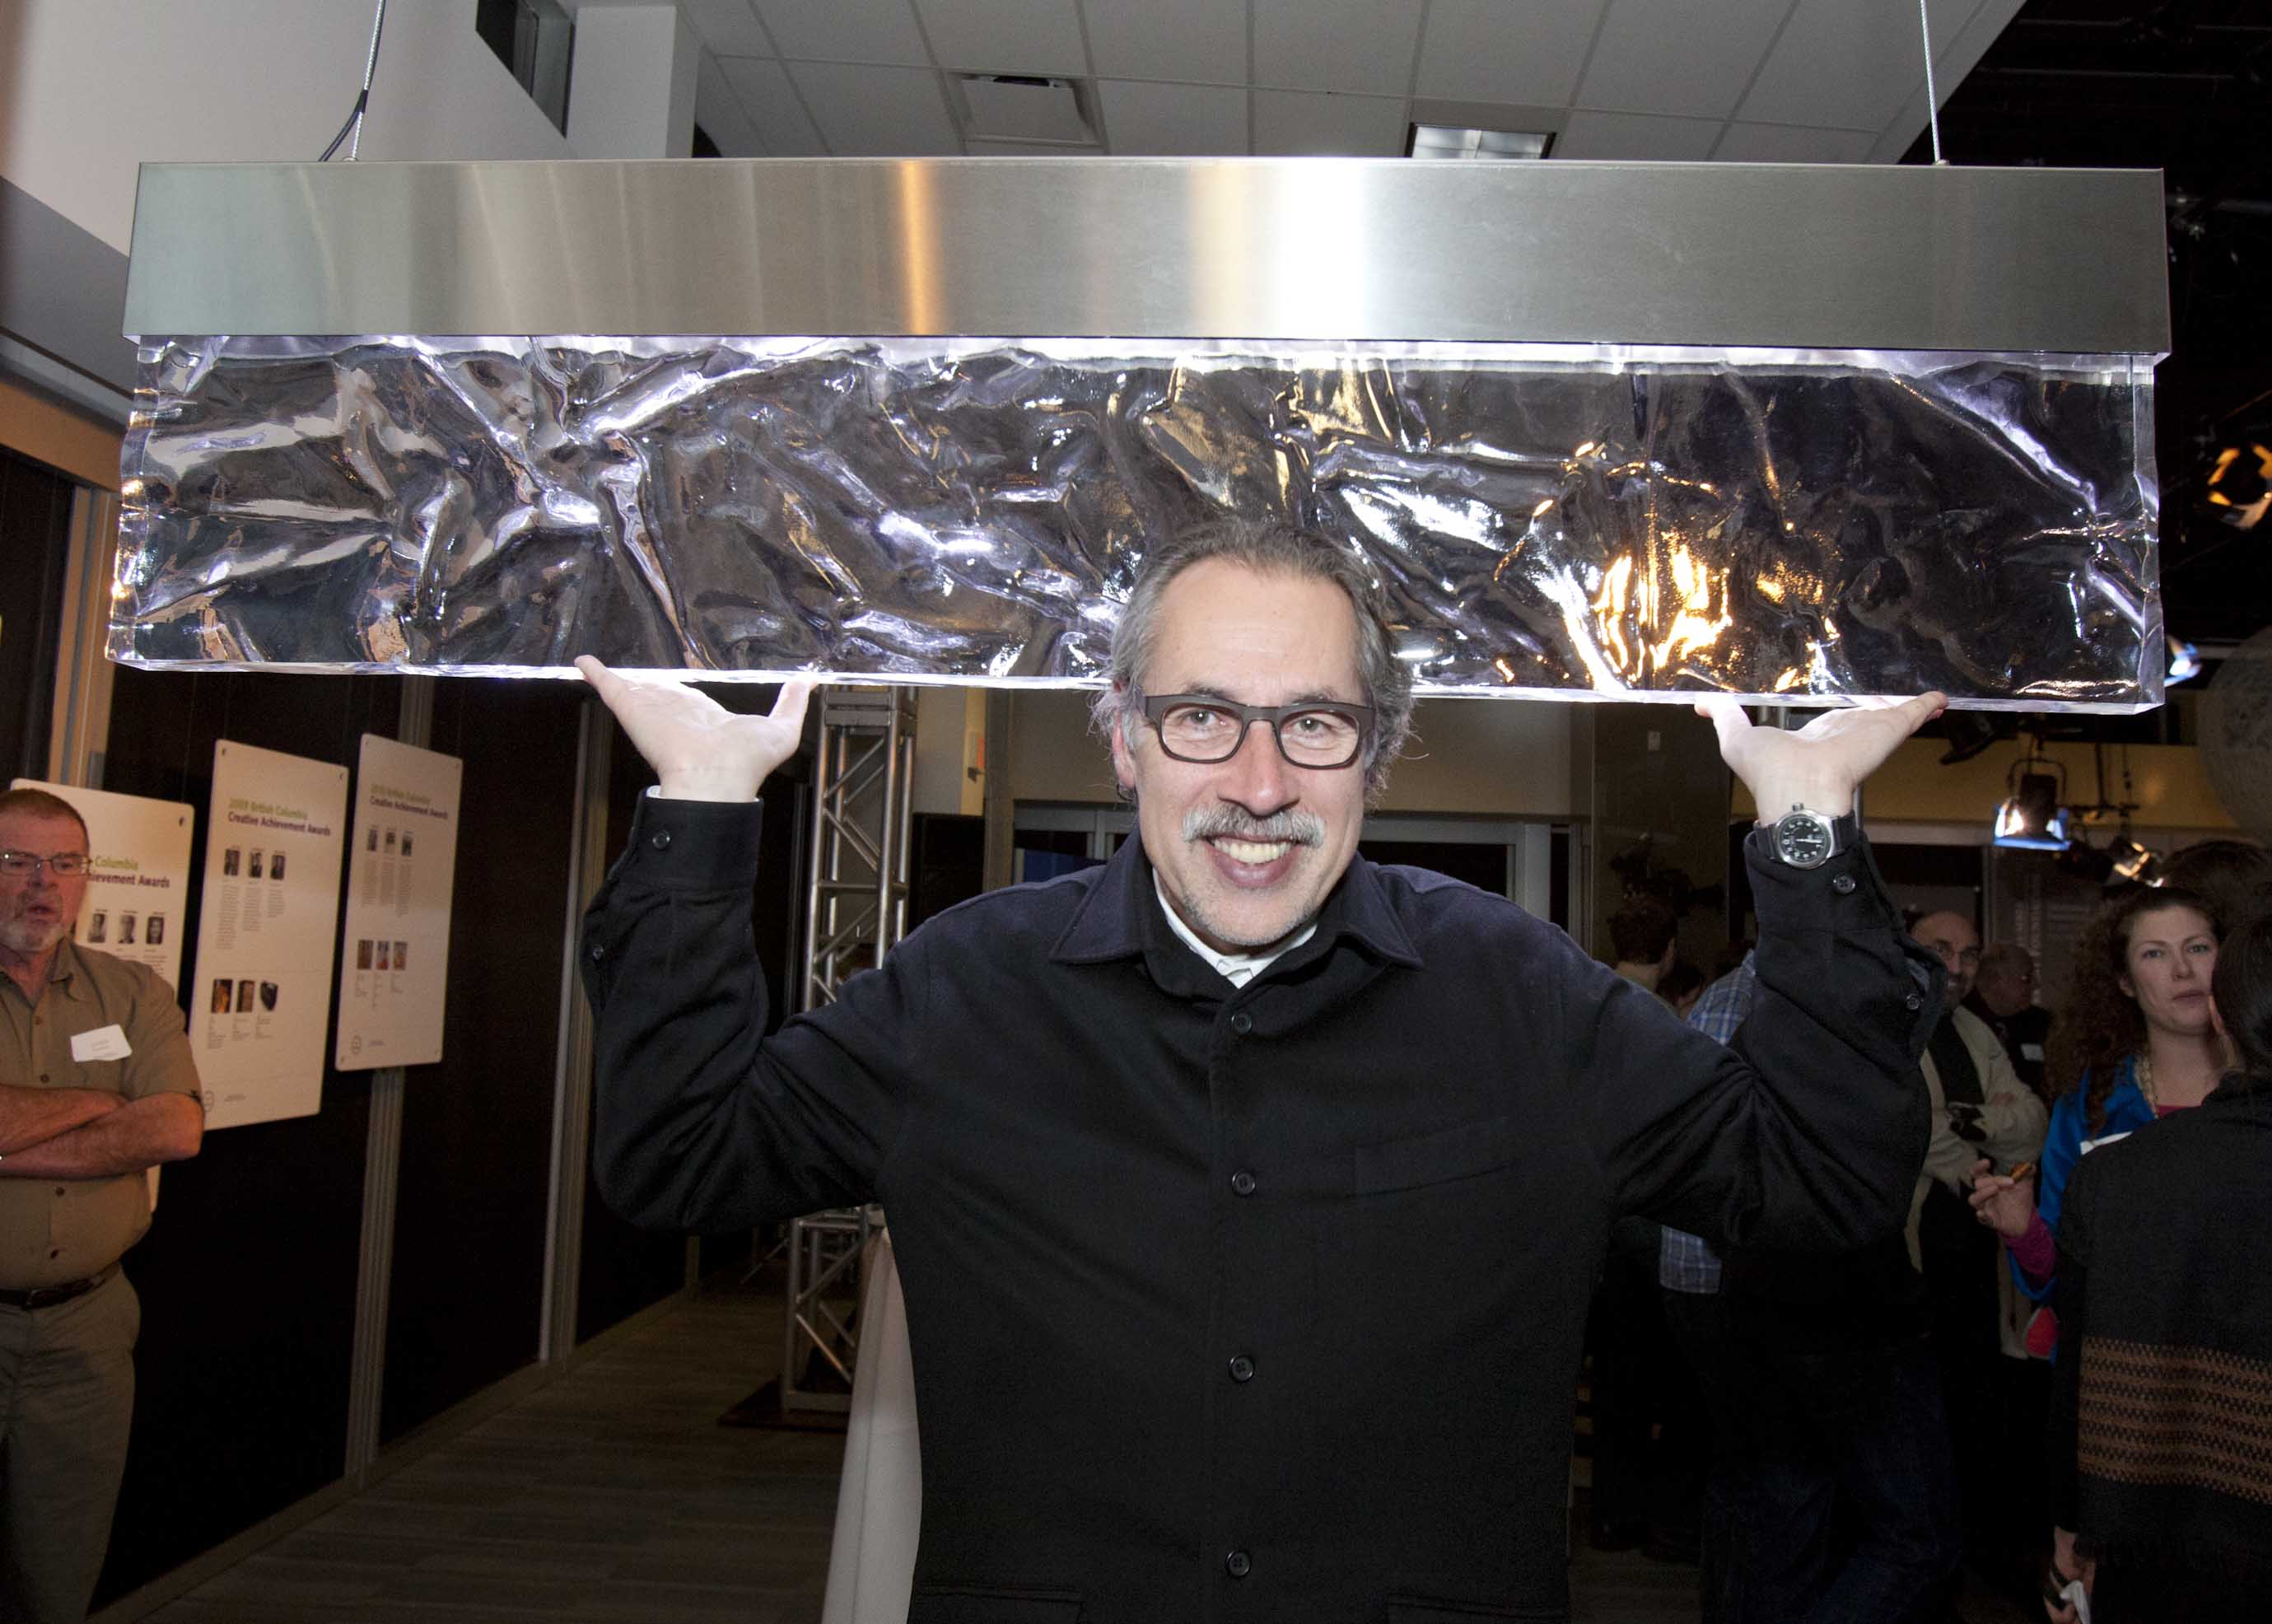 Joel Berman, shown here with his award-winning Heat light sculpture, received the Carter Wosk British Columbia Creative Achievement Award for Applied Art & Design